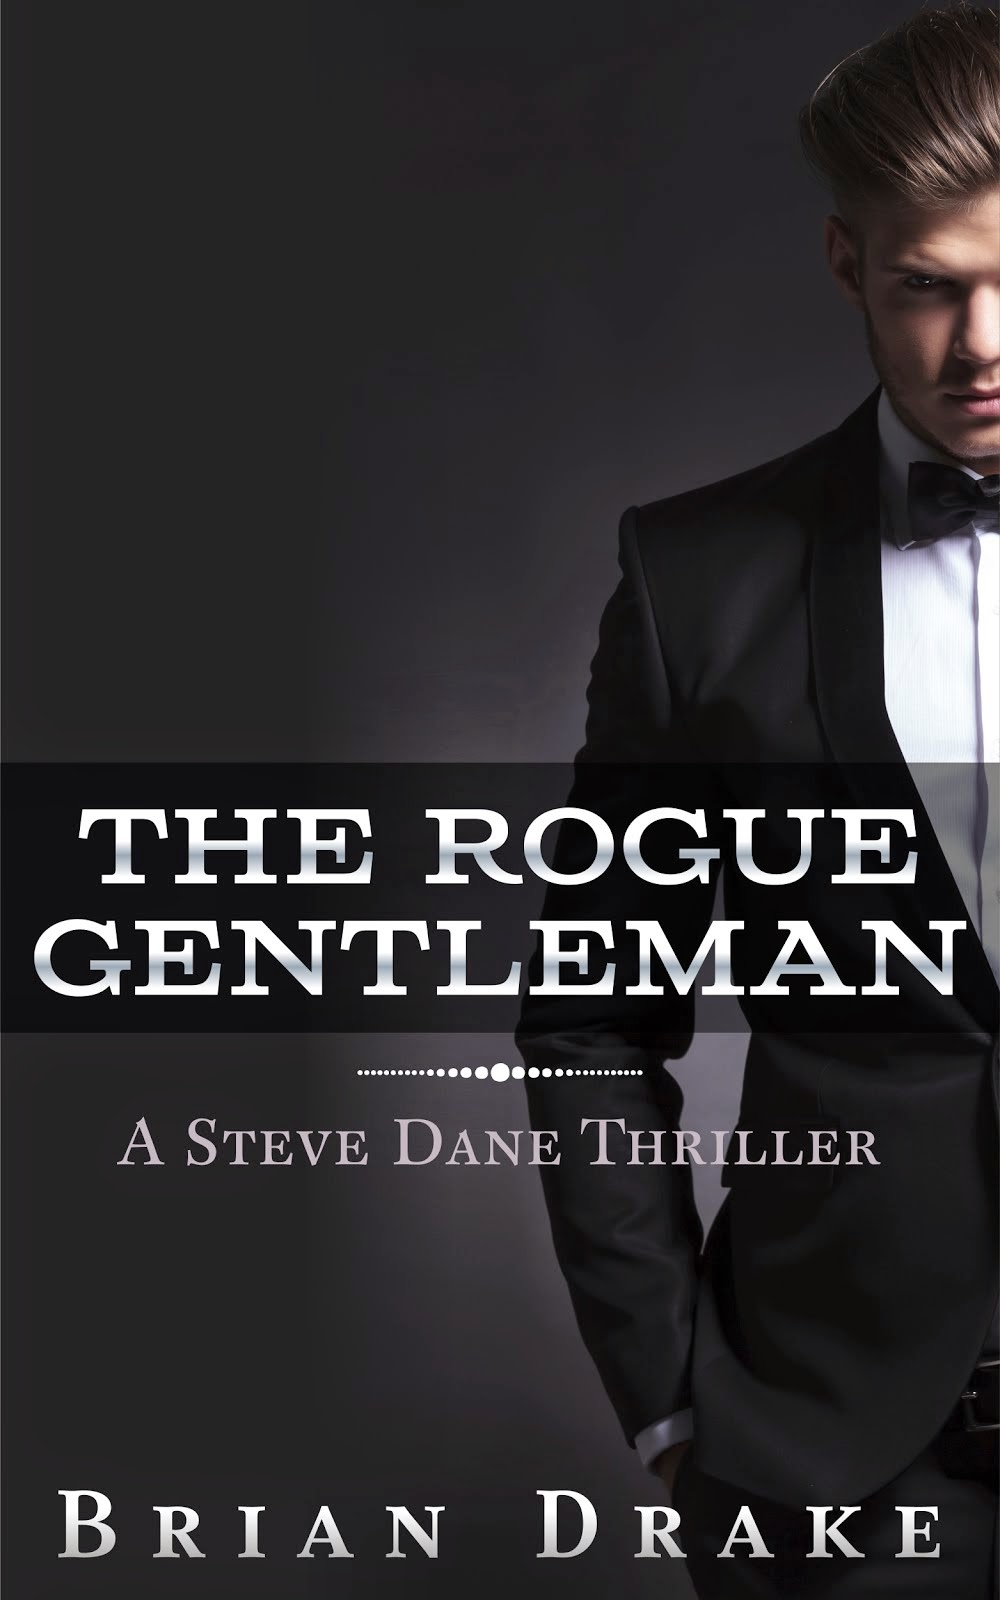 The Rogue Gentleman--FREE DOWNLOAD